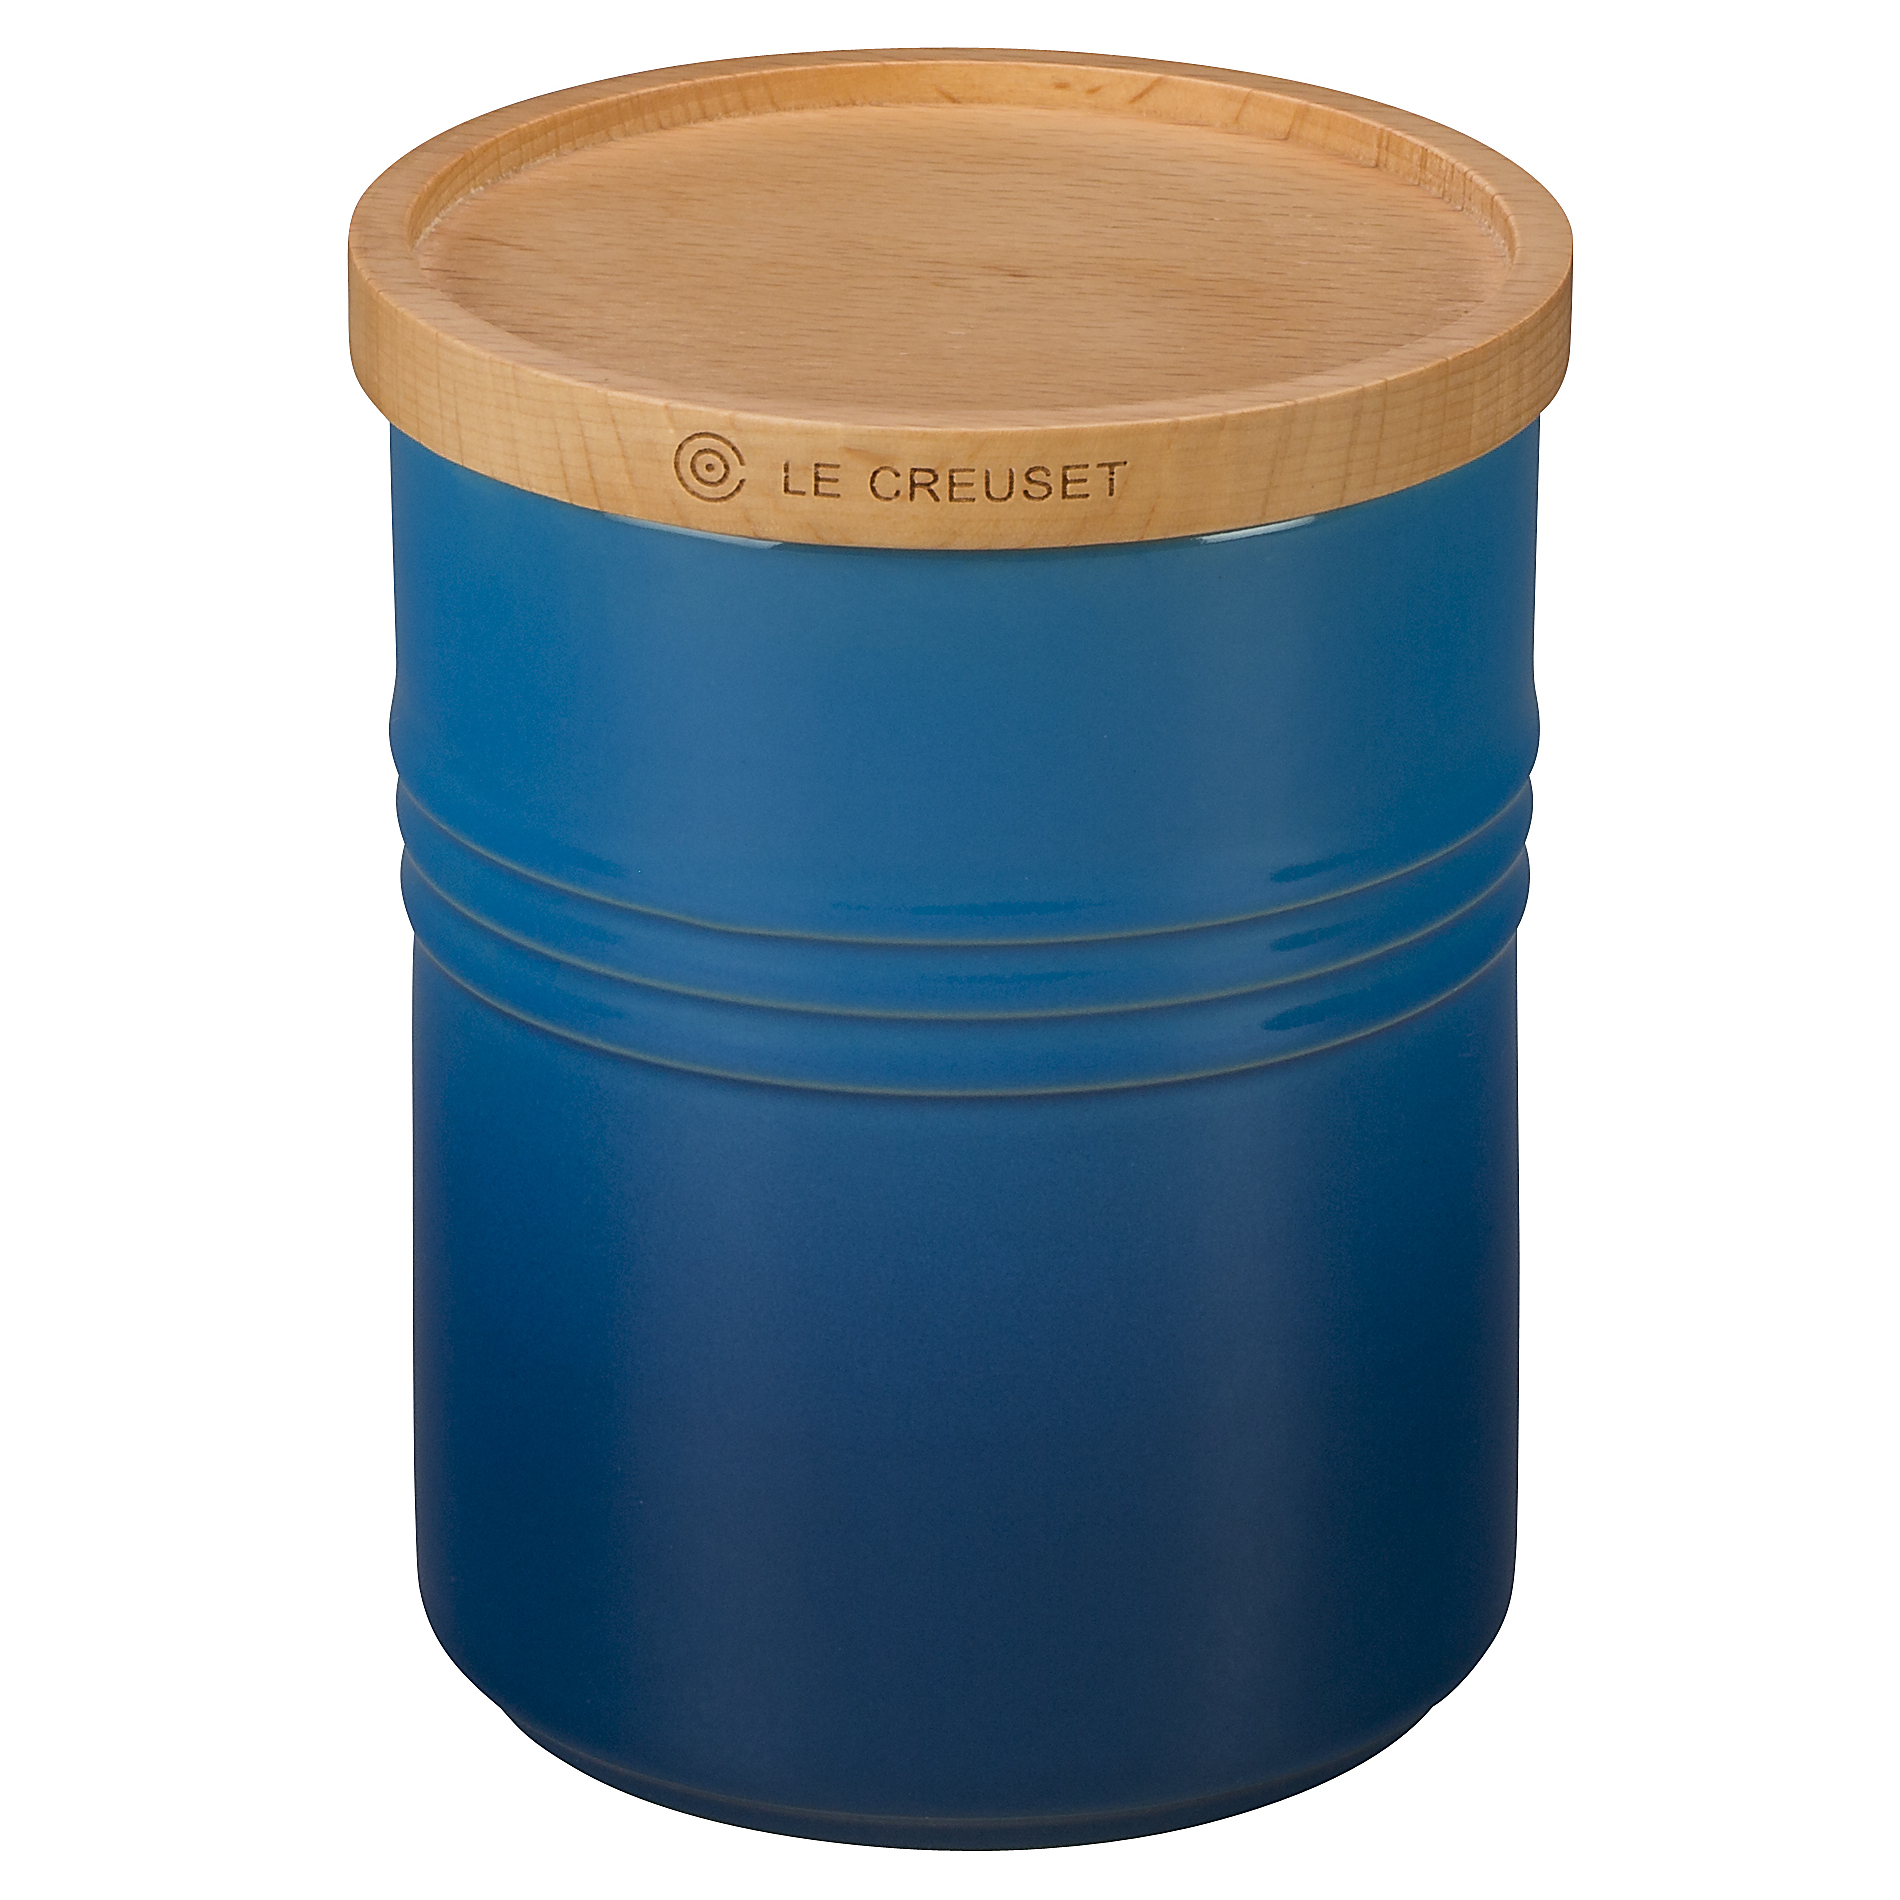 Le Creuset Marseille Stoneware 2.5 Quart Canister with Wooden Lid